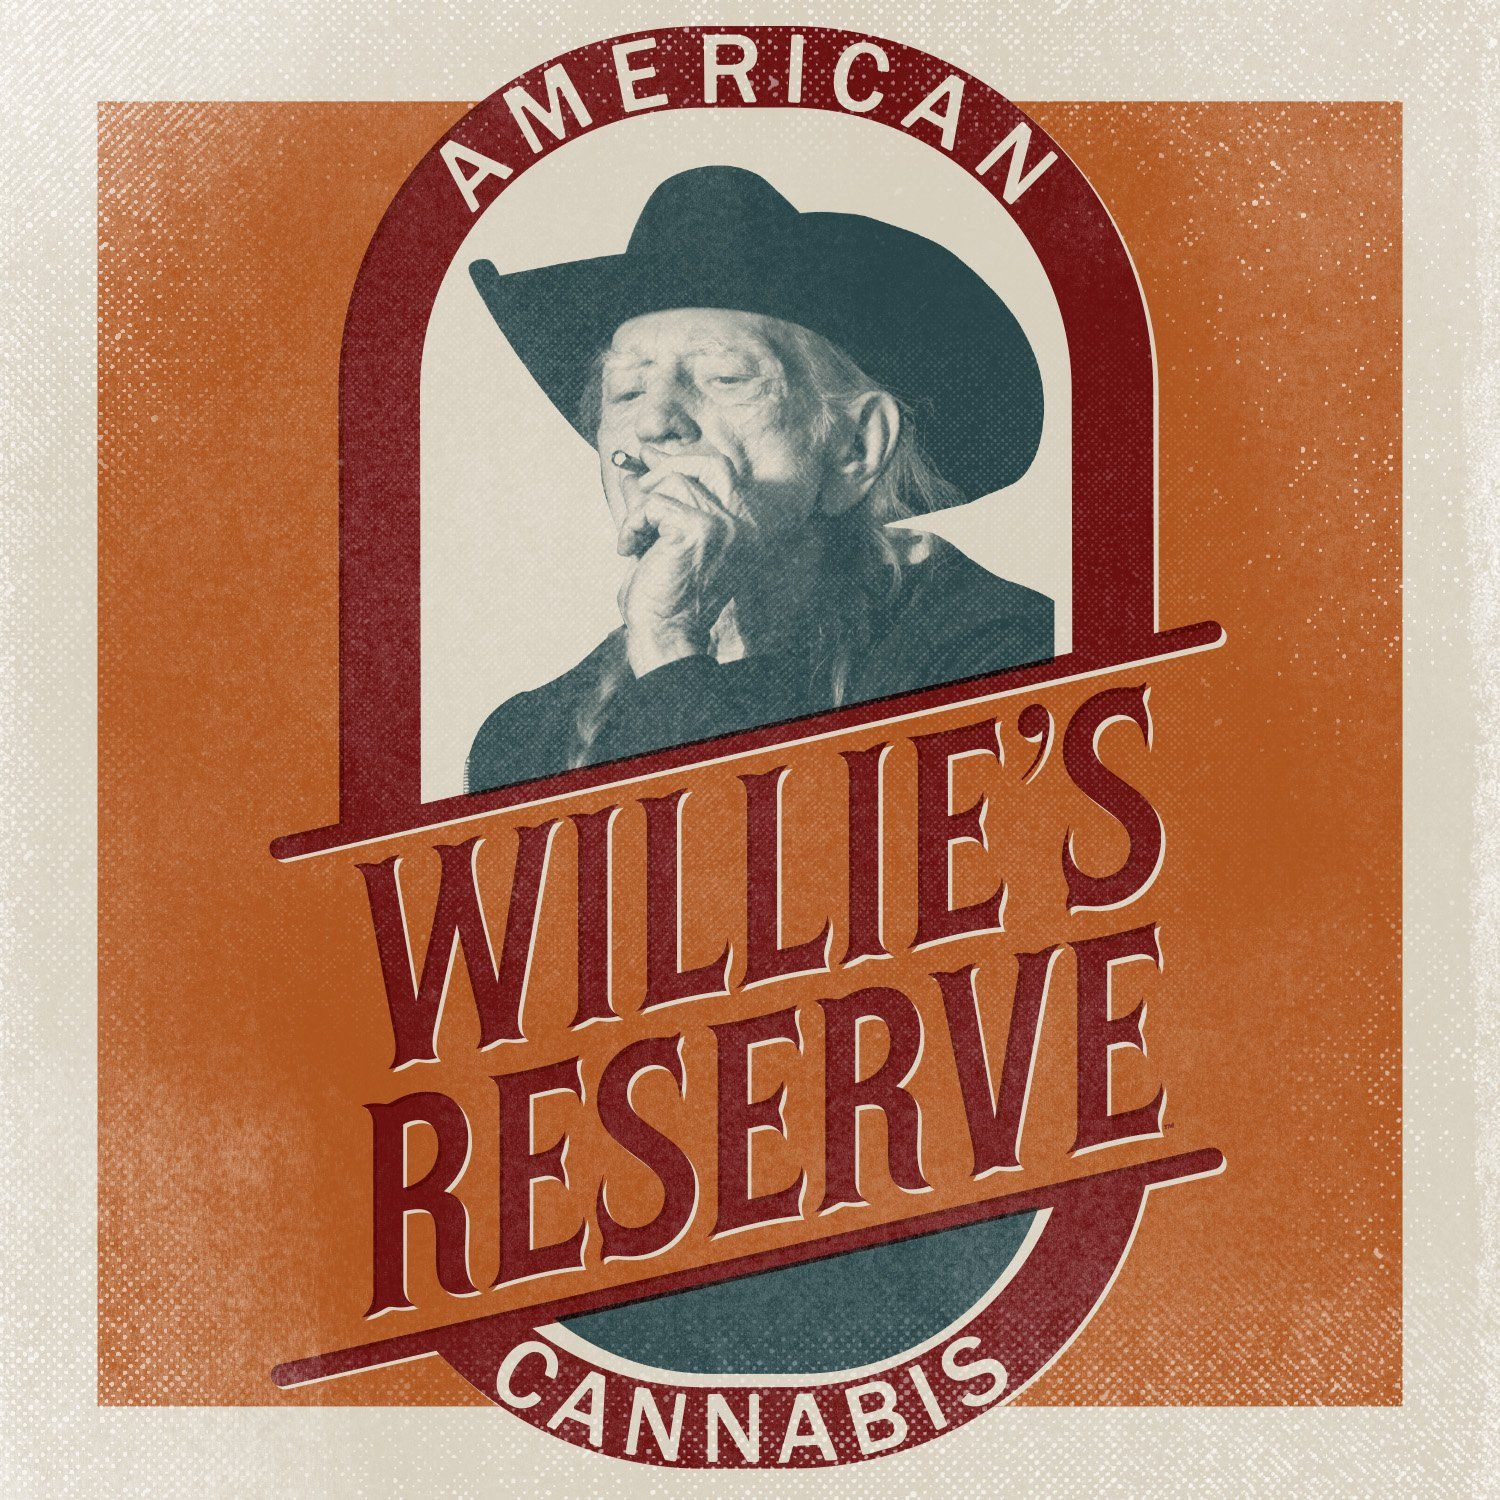 courtesy of Willie's Reserve